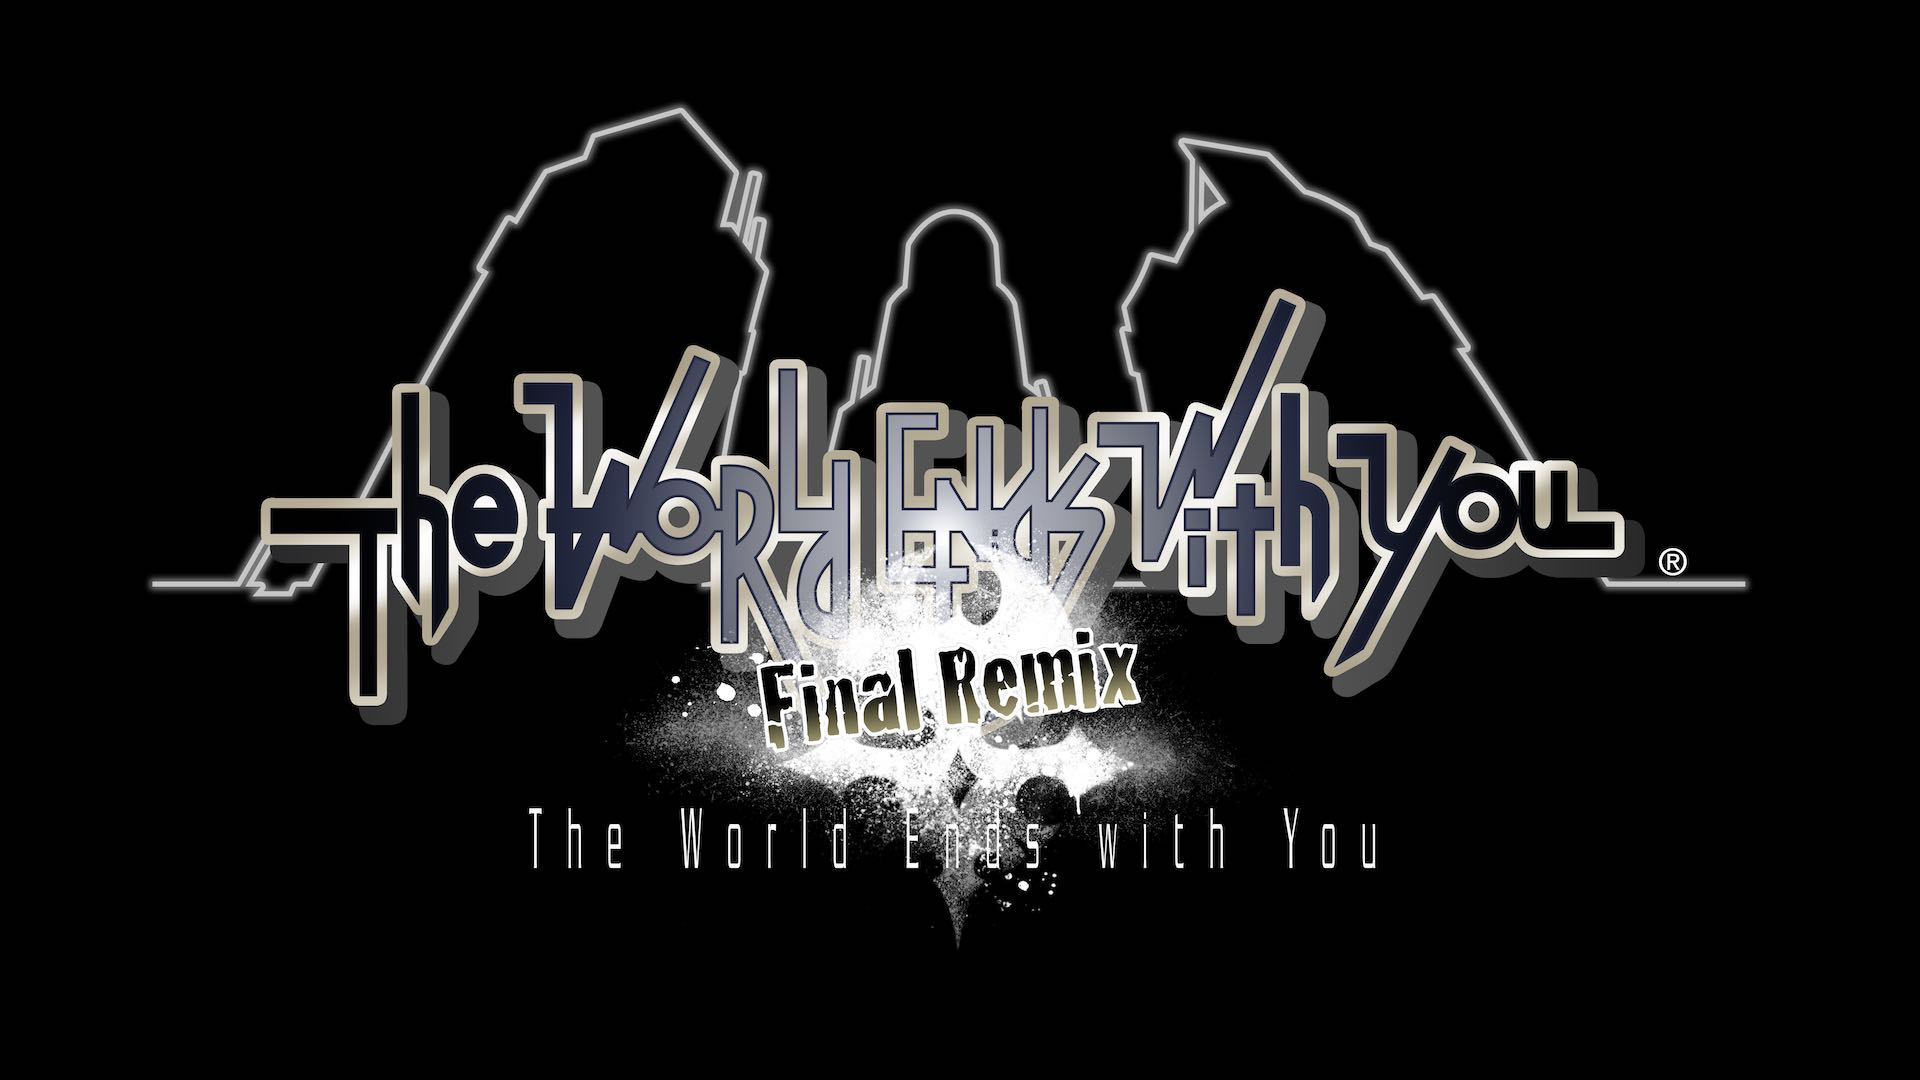 the-world-ends-with-you-final-remix-logo